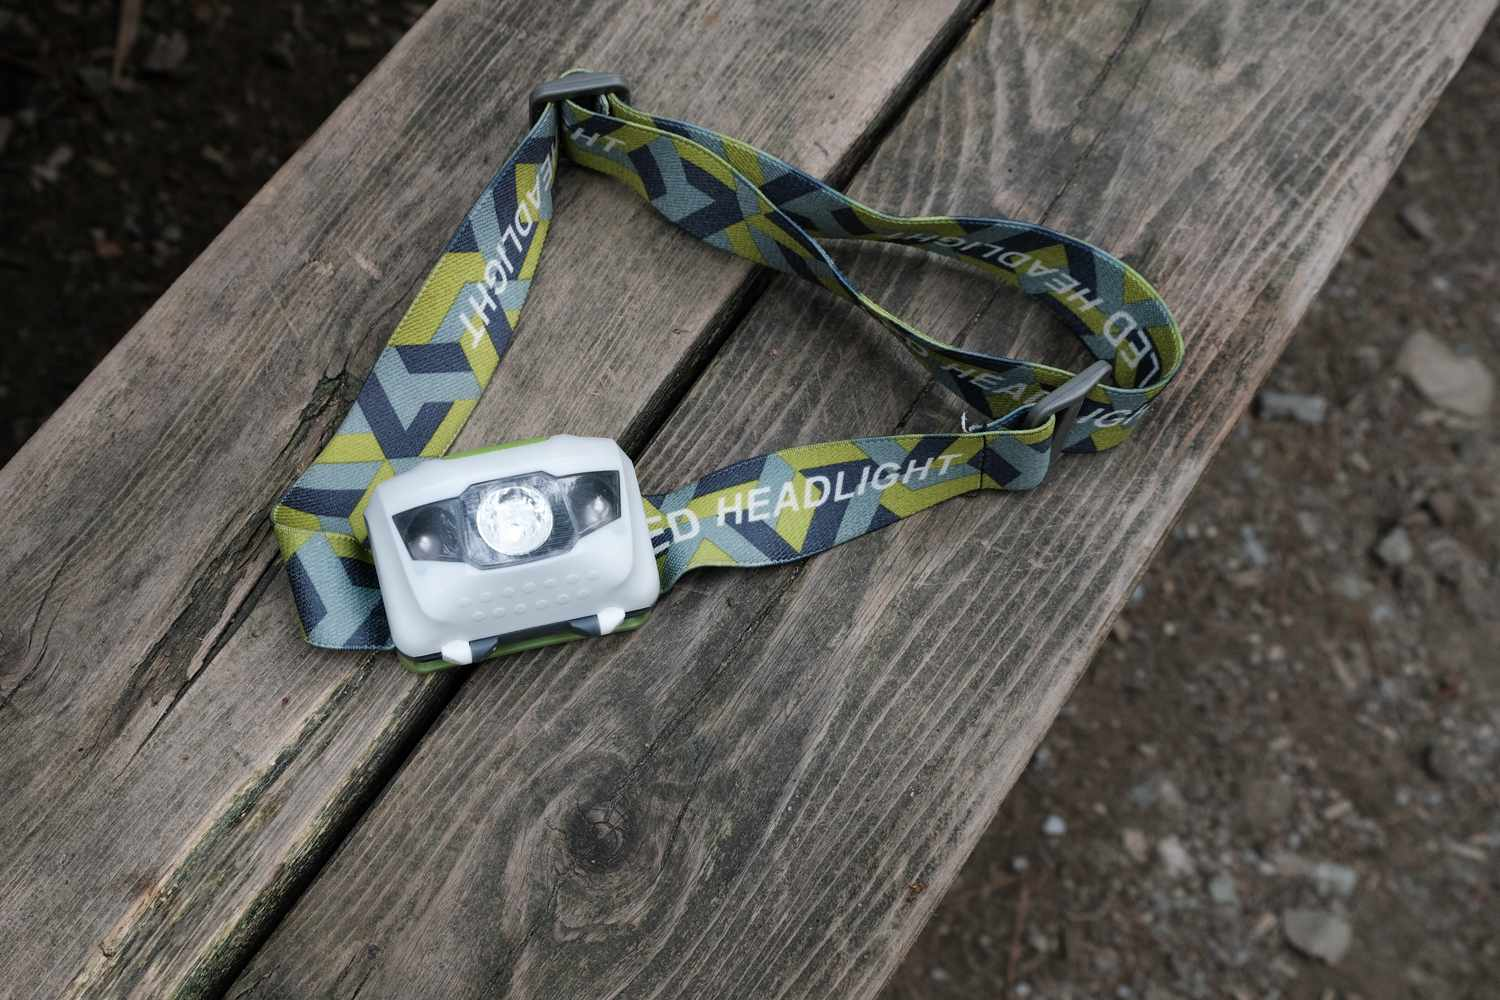 a headlamp rests on wooden picnic bench, ready for nighttime camping